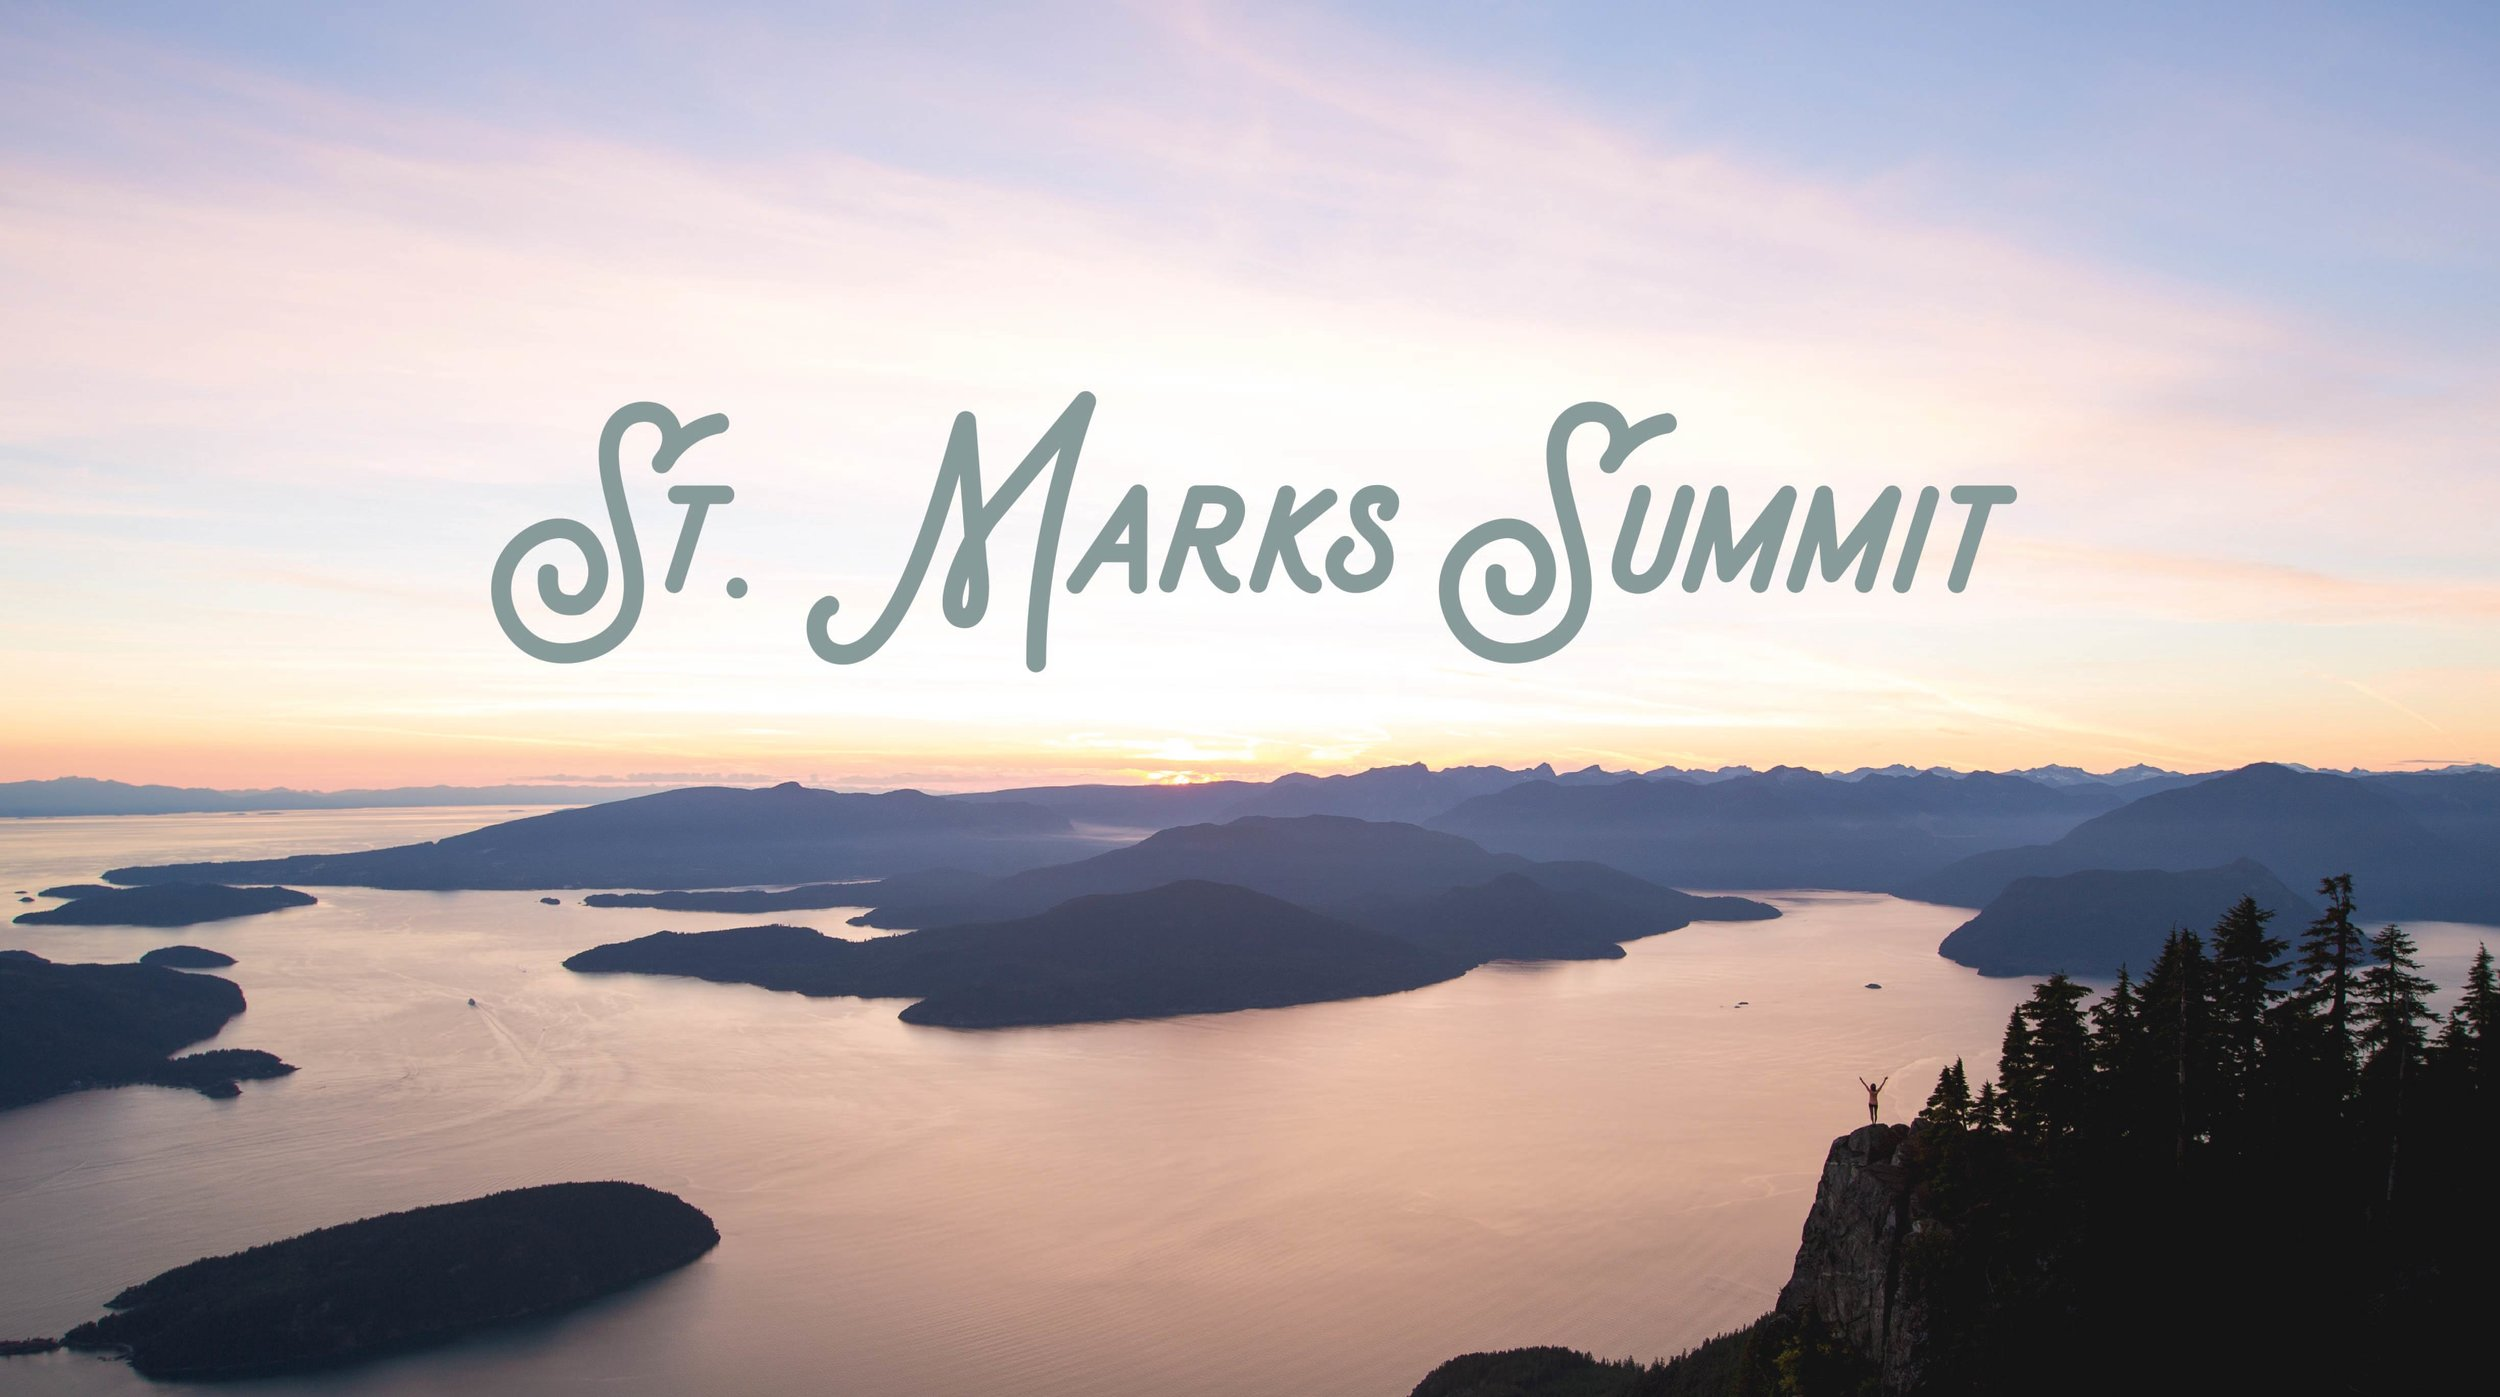 St. Mark's Summit - VancityWild